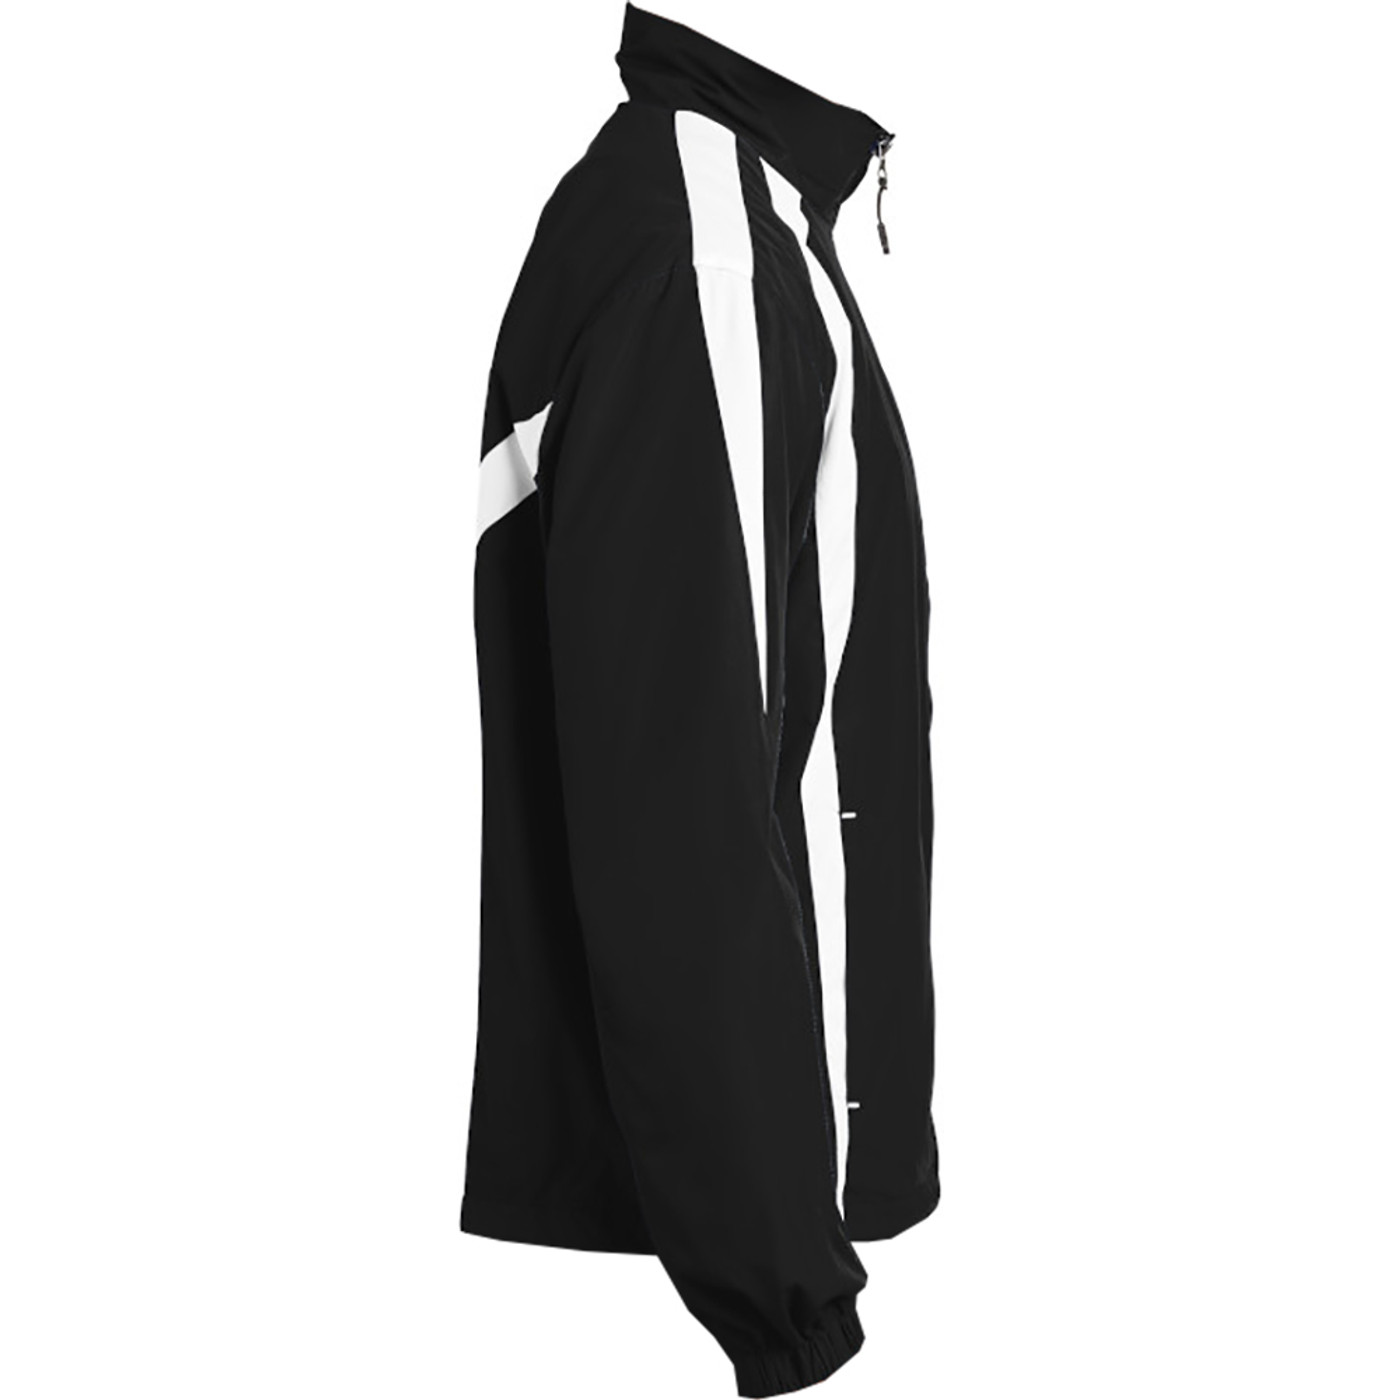 1197JCL USSF Value Warm-Up Jacket